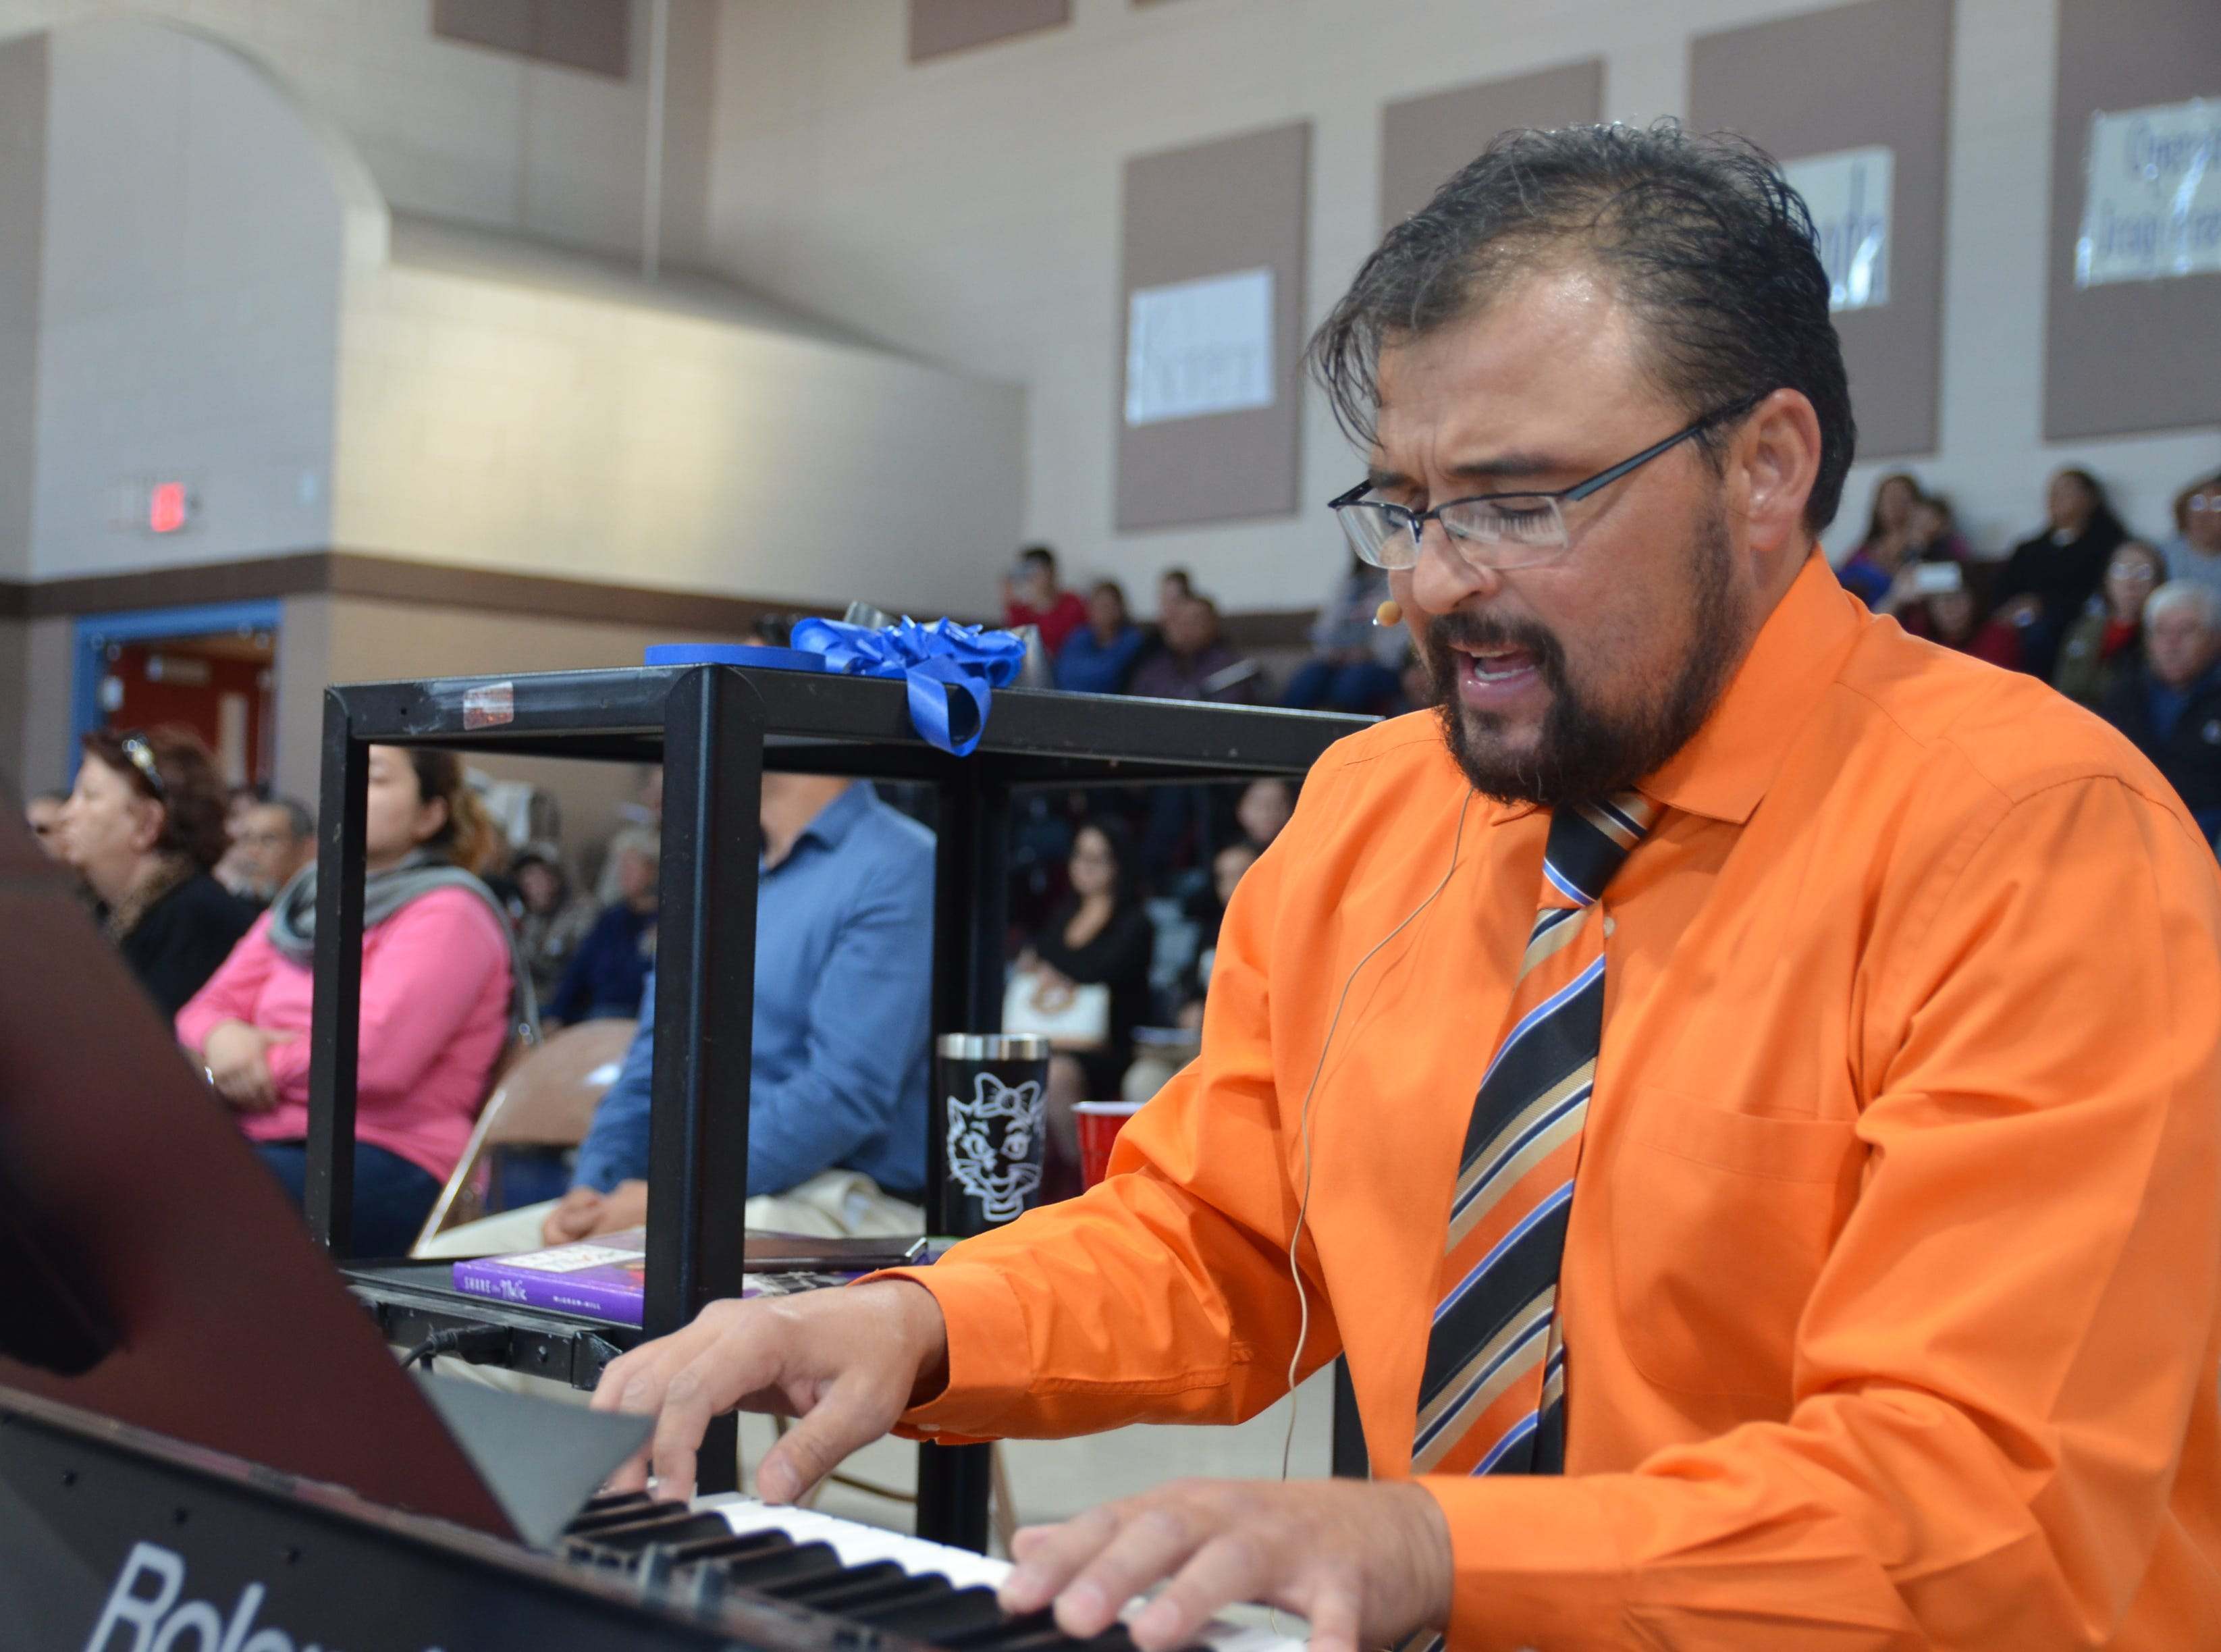 Music teacher Brandon Perrault of Ruben S. Torres Elementary School plays and sings along with students.